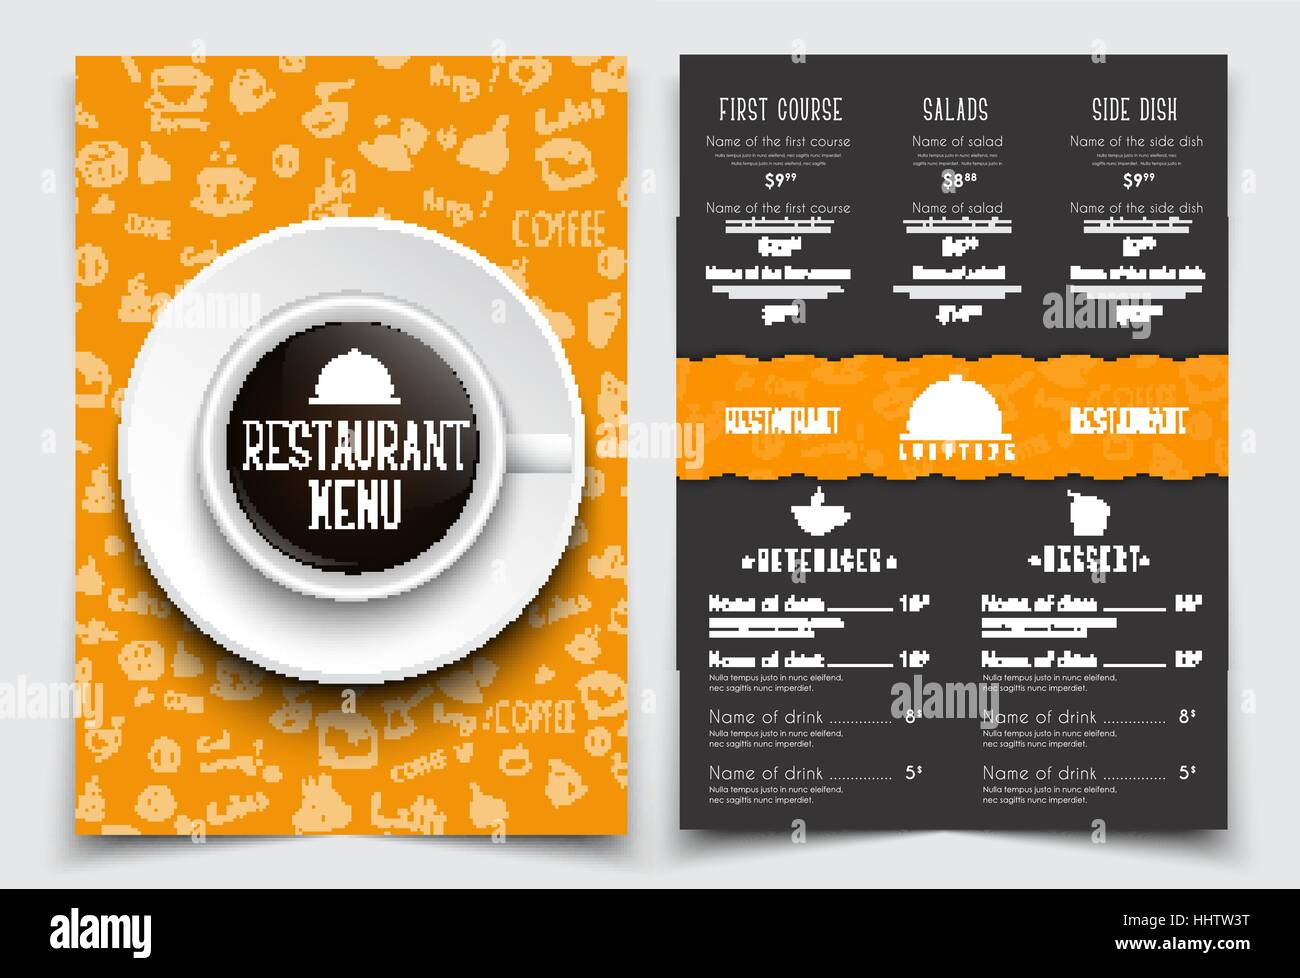 menu design for restaurant or cafe with a cup of black coffee on the